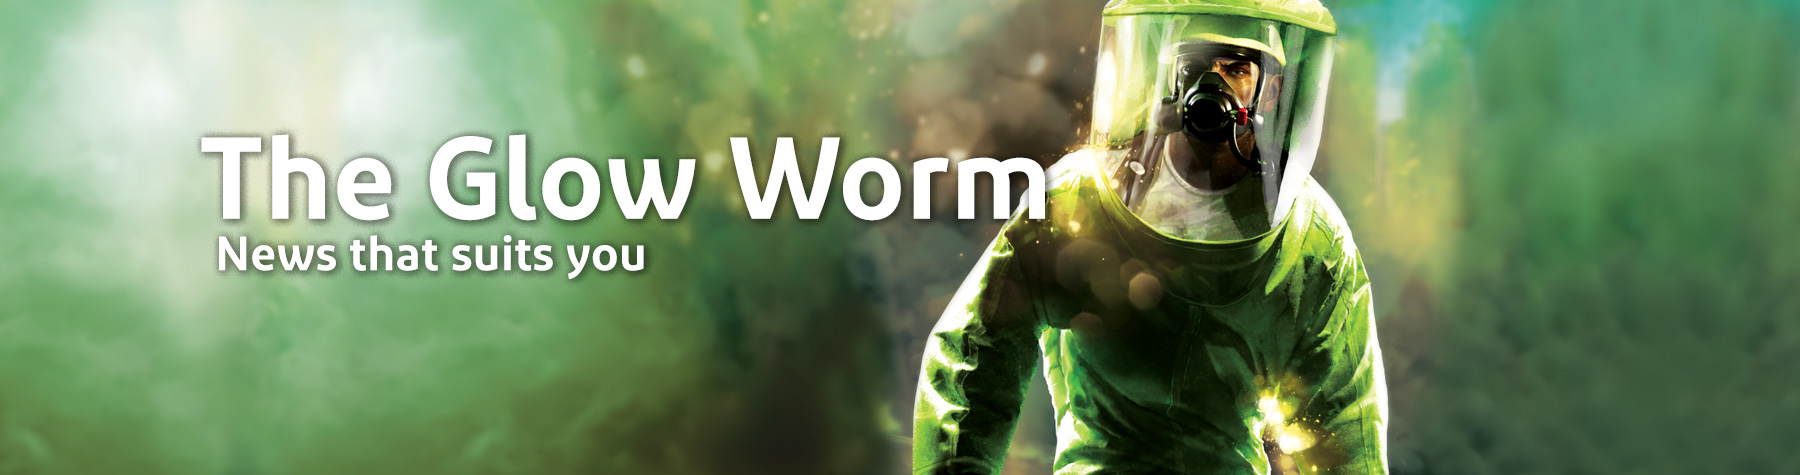 The Glow Worm - news that suits you